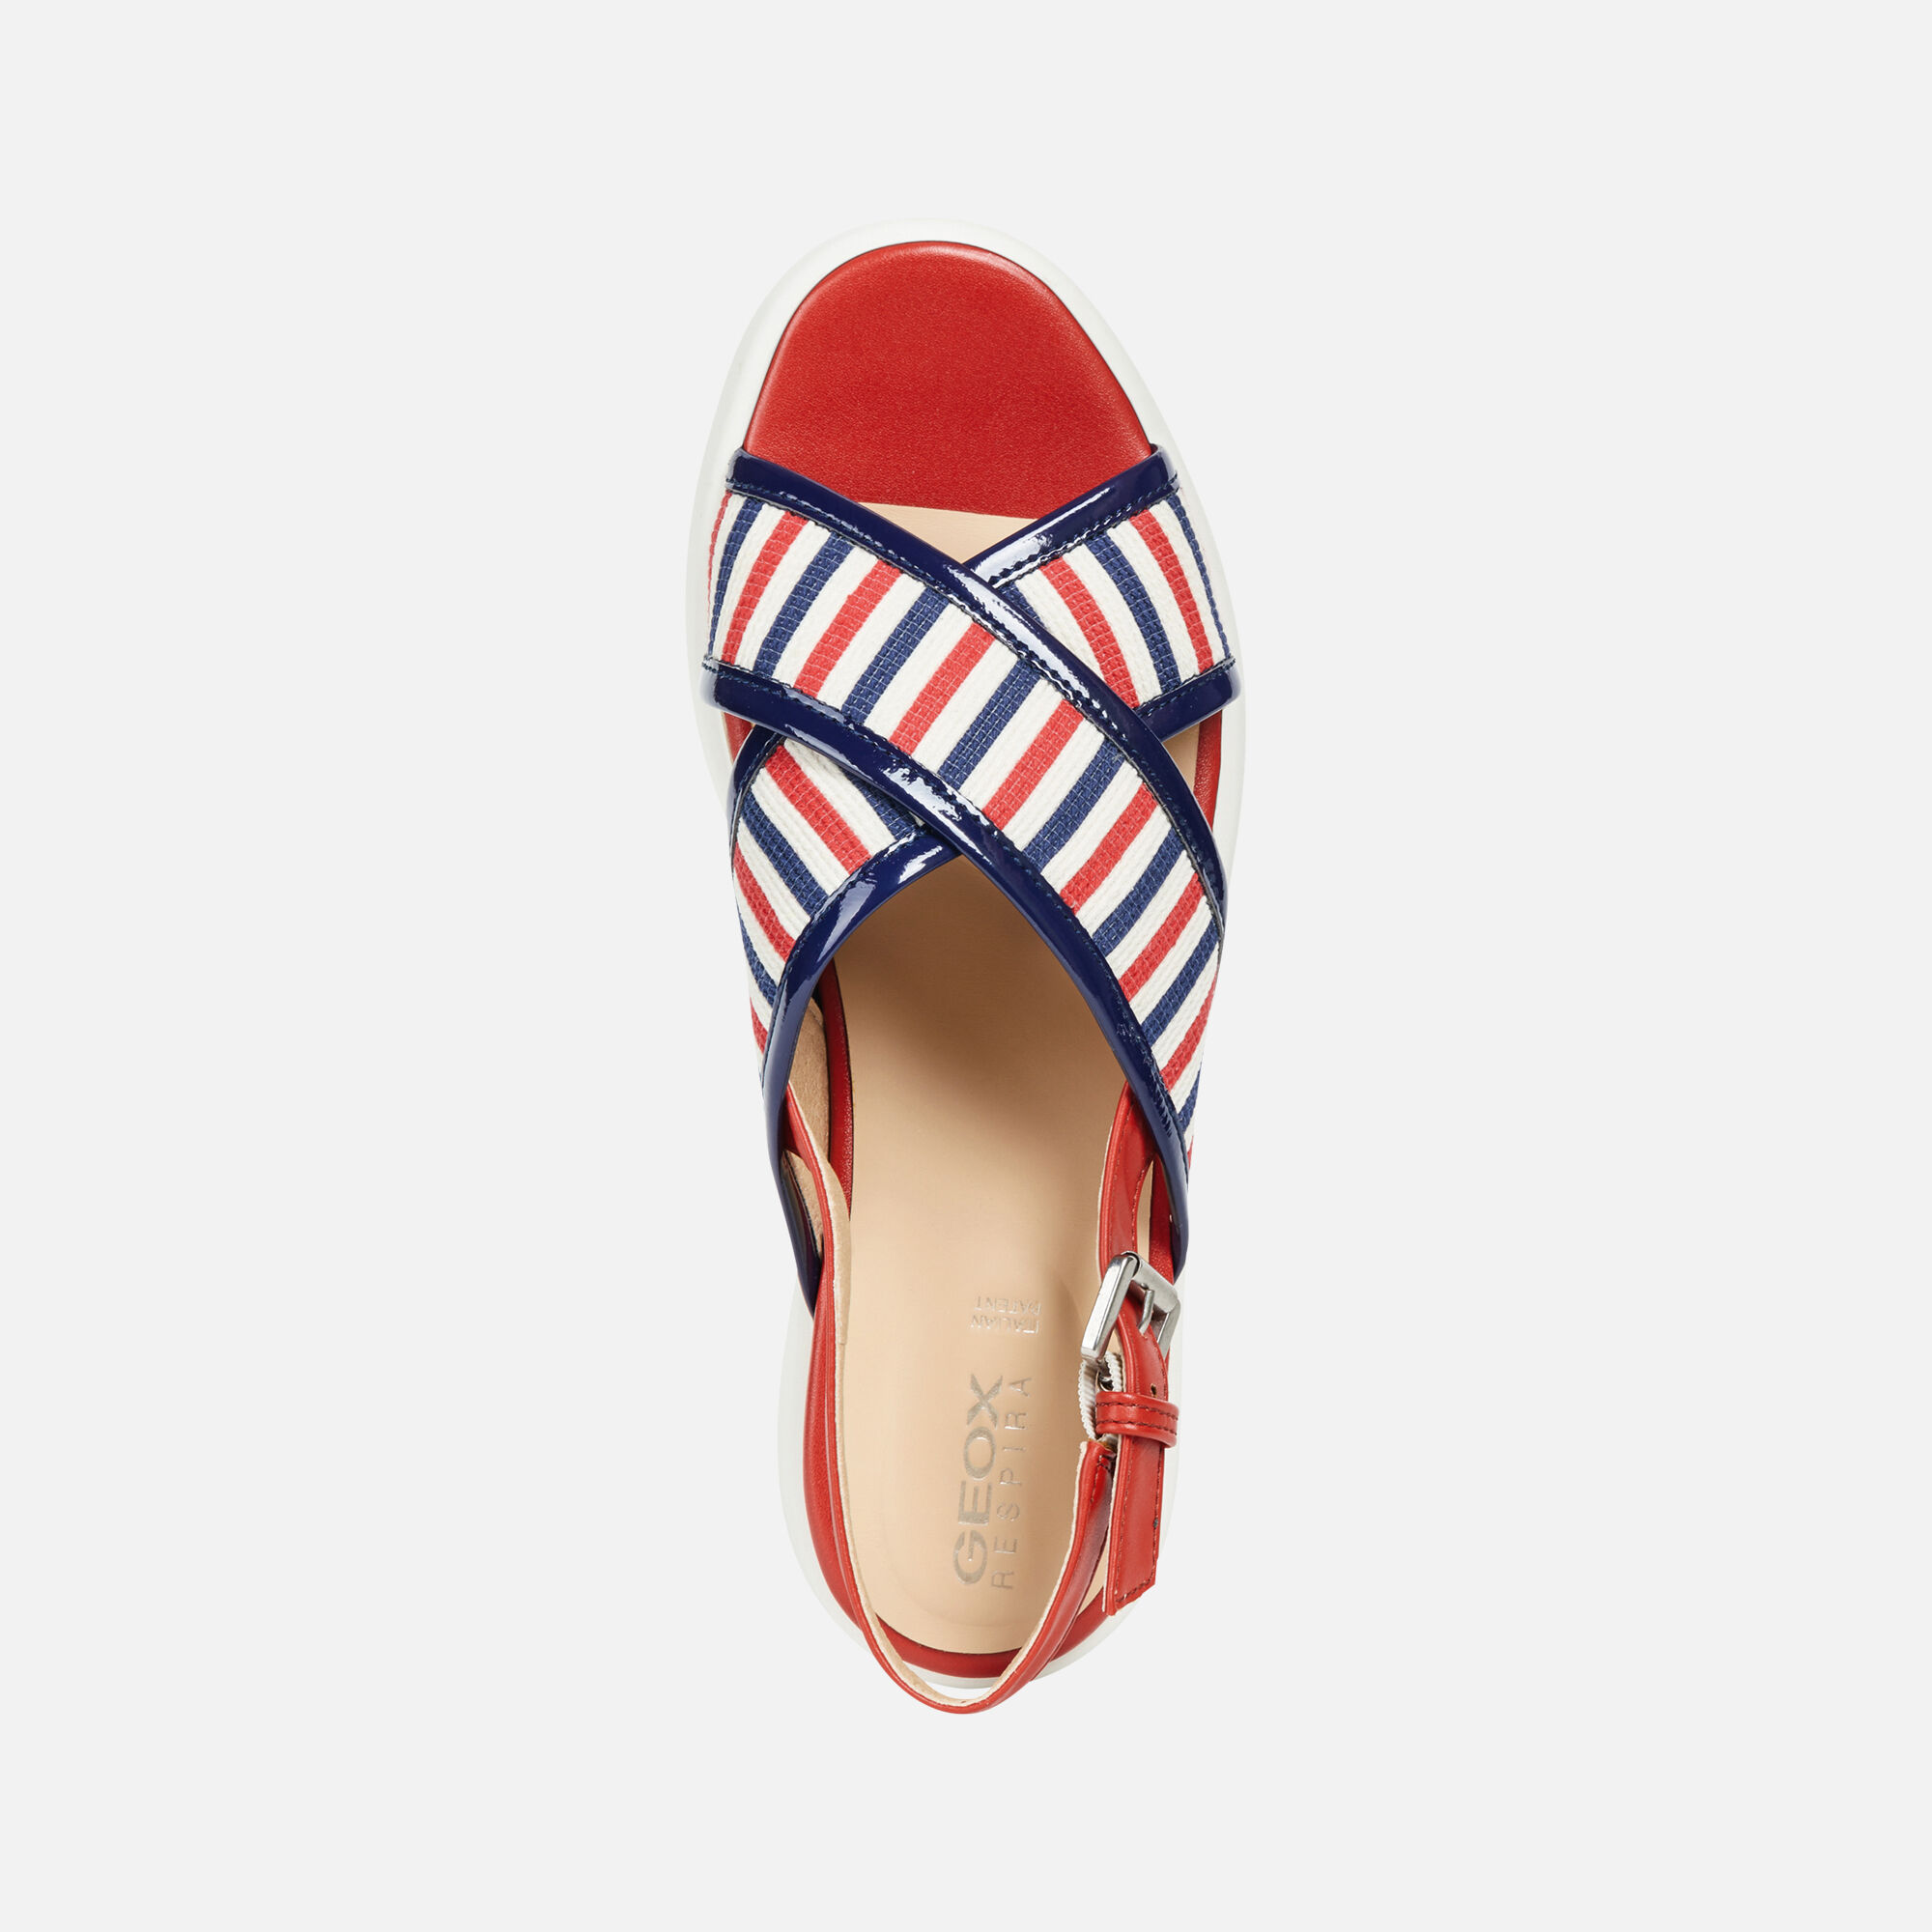 Geox D WIMBLEY SANDAL: Red and Blue Woman sandal | Geox